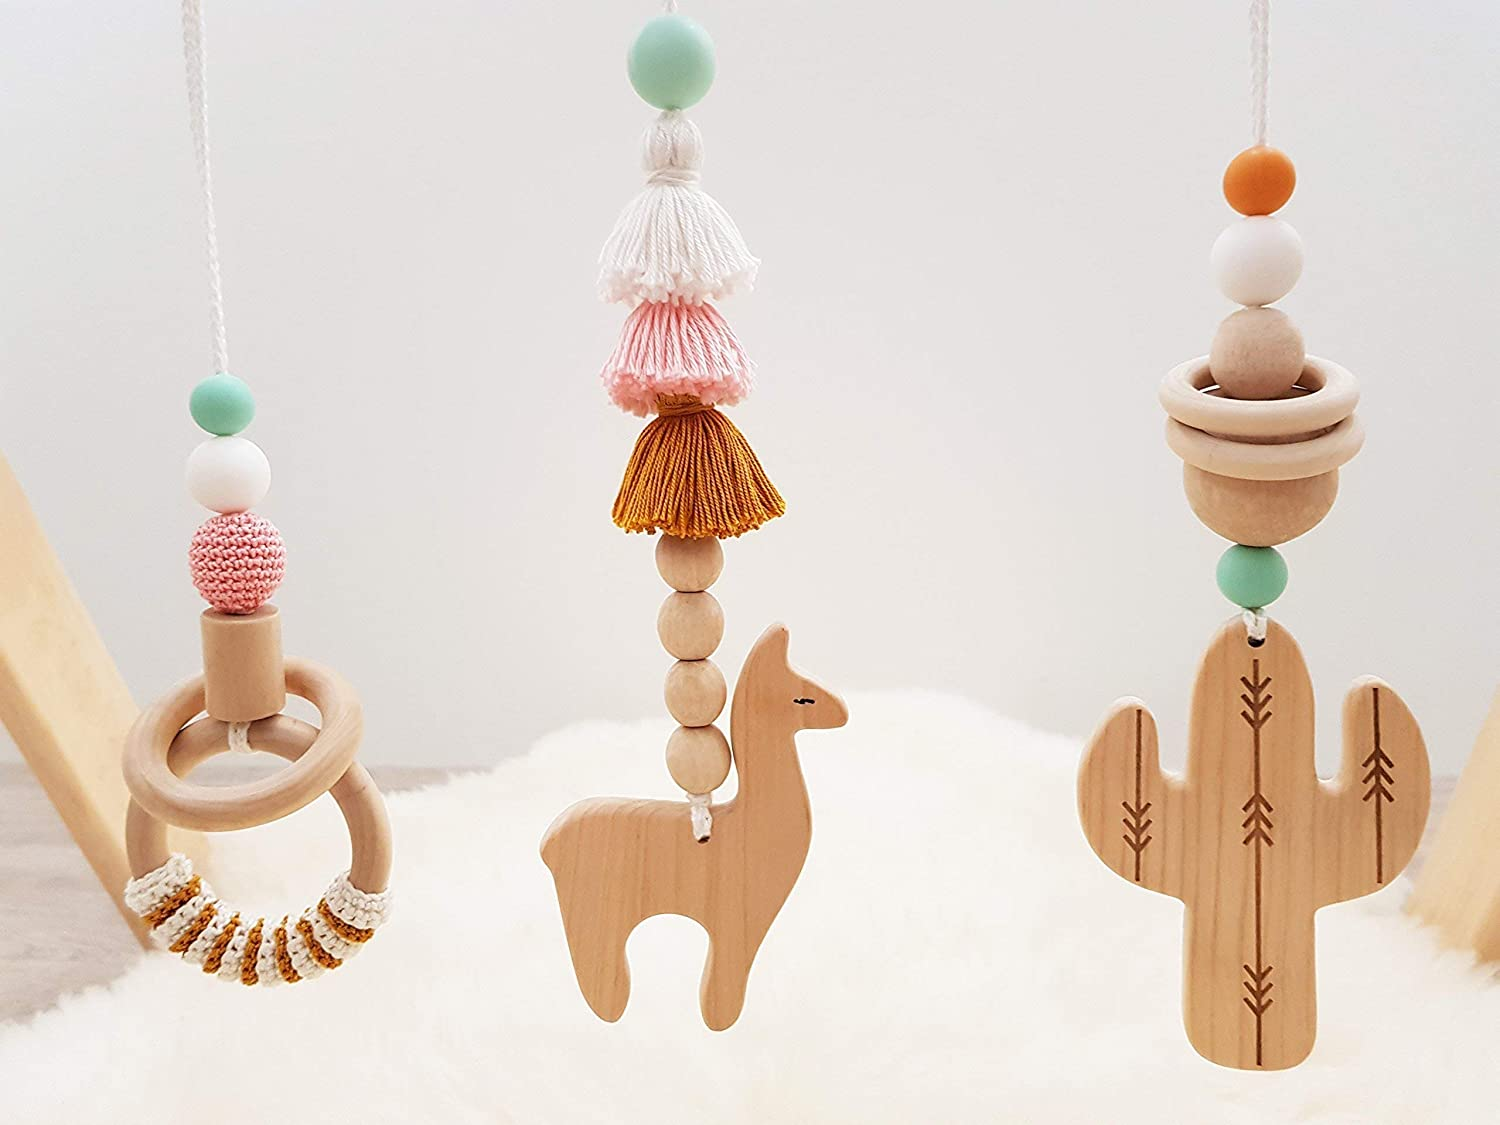 Wooden baby gym mobiles. Set of 3: cactus, llama, ring. Desert. Boho. Travel. Play Gym Accessory. Activity center. Baby Shower Gift